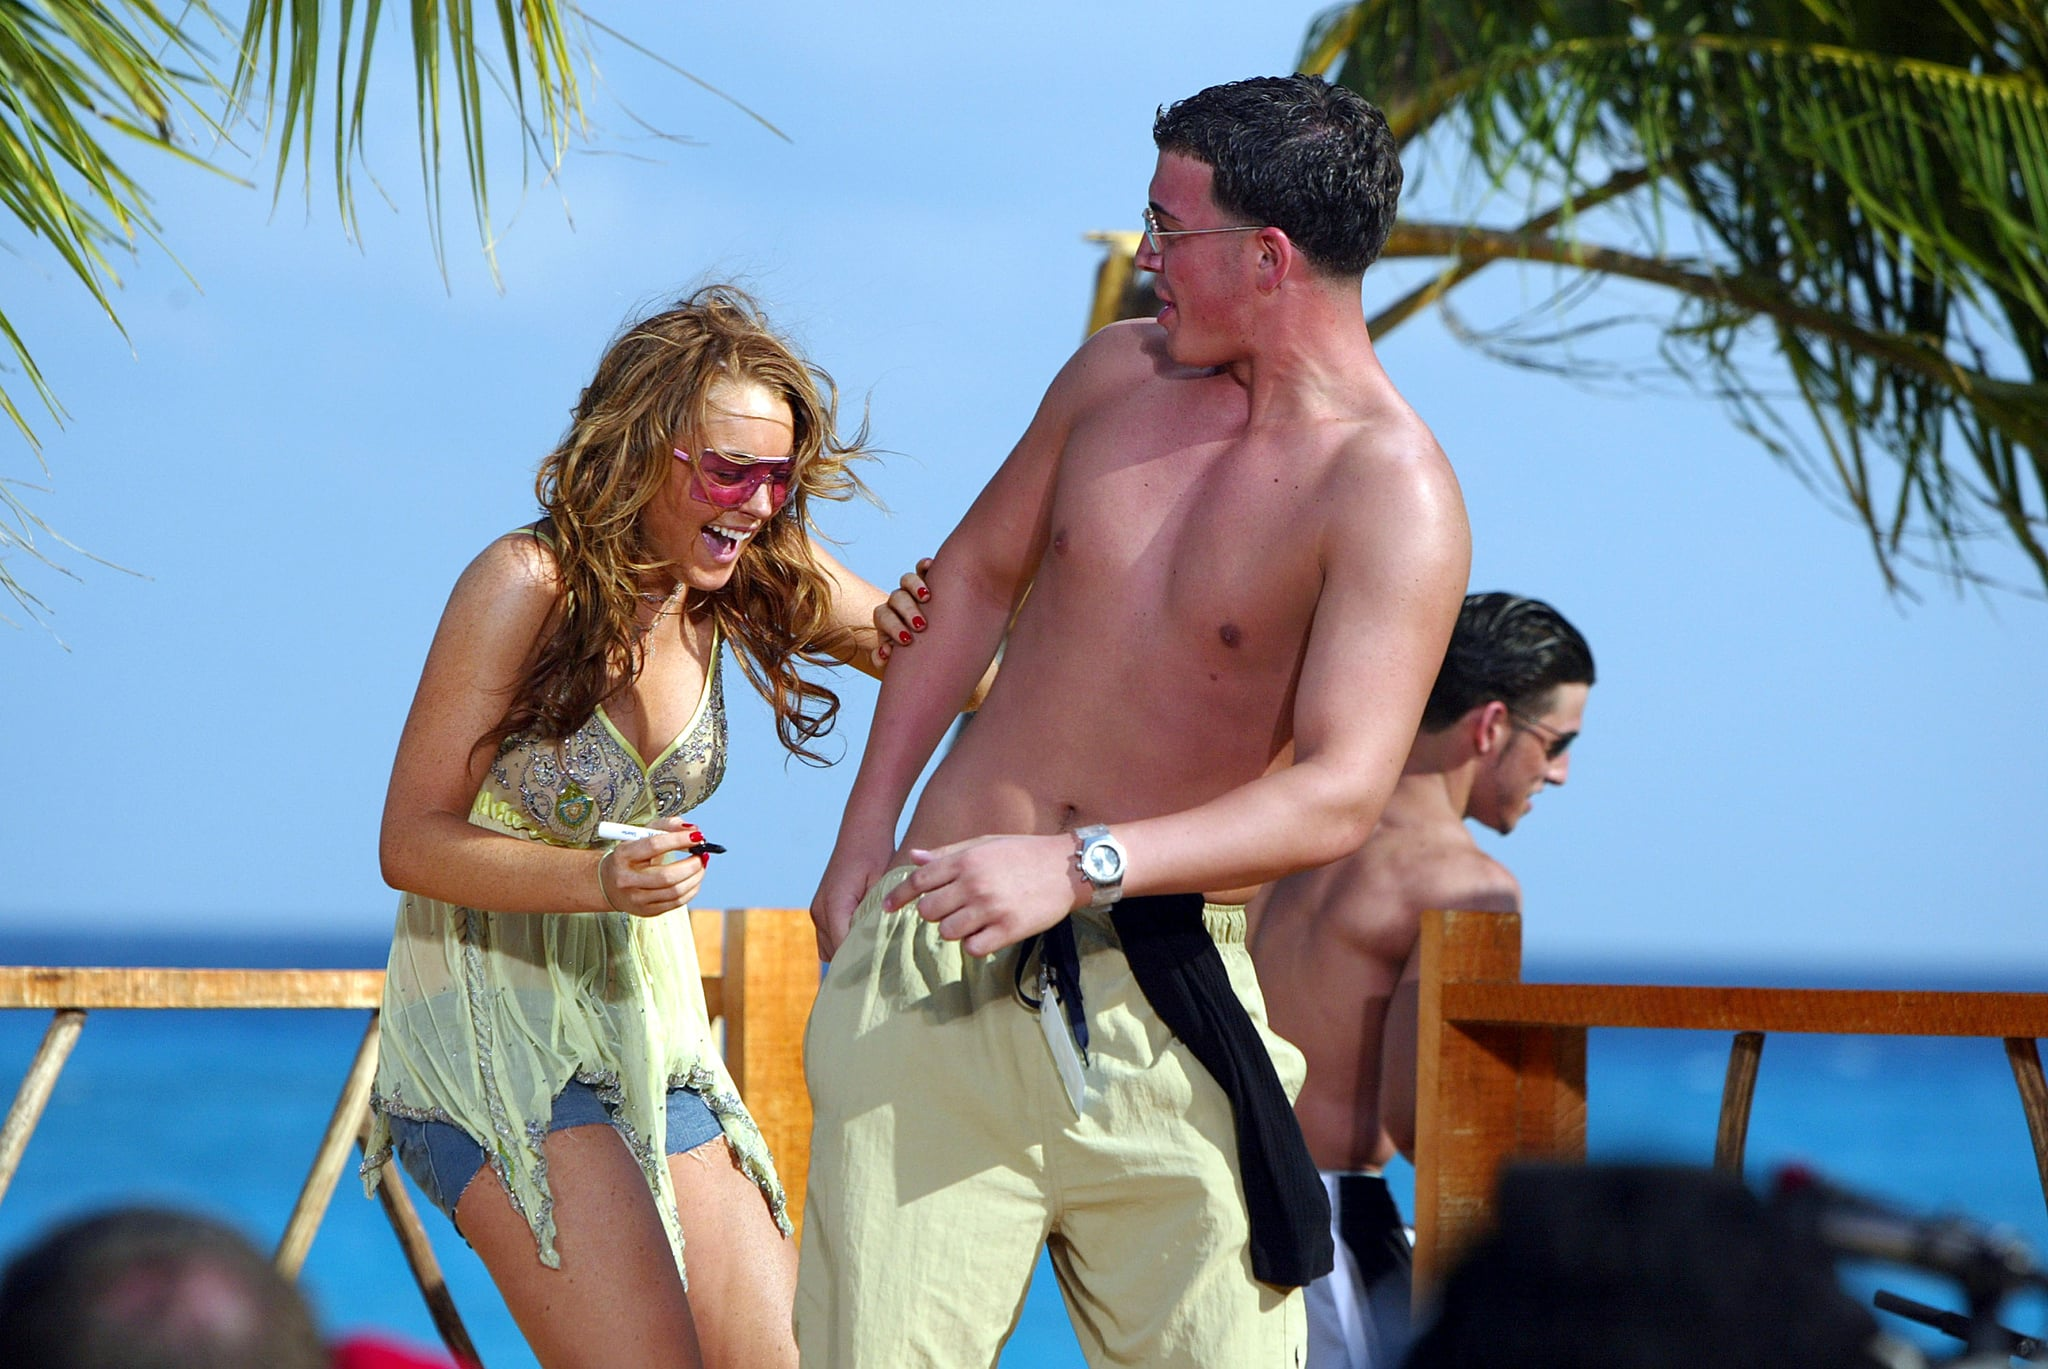 2004: Things get weird for Lindsay Lohan in Cancun.